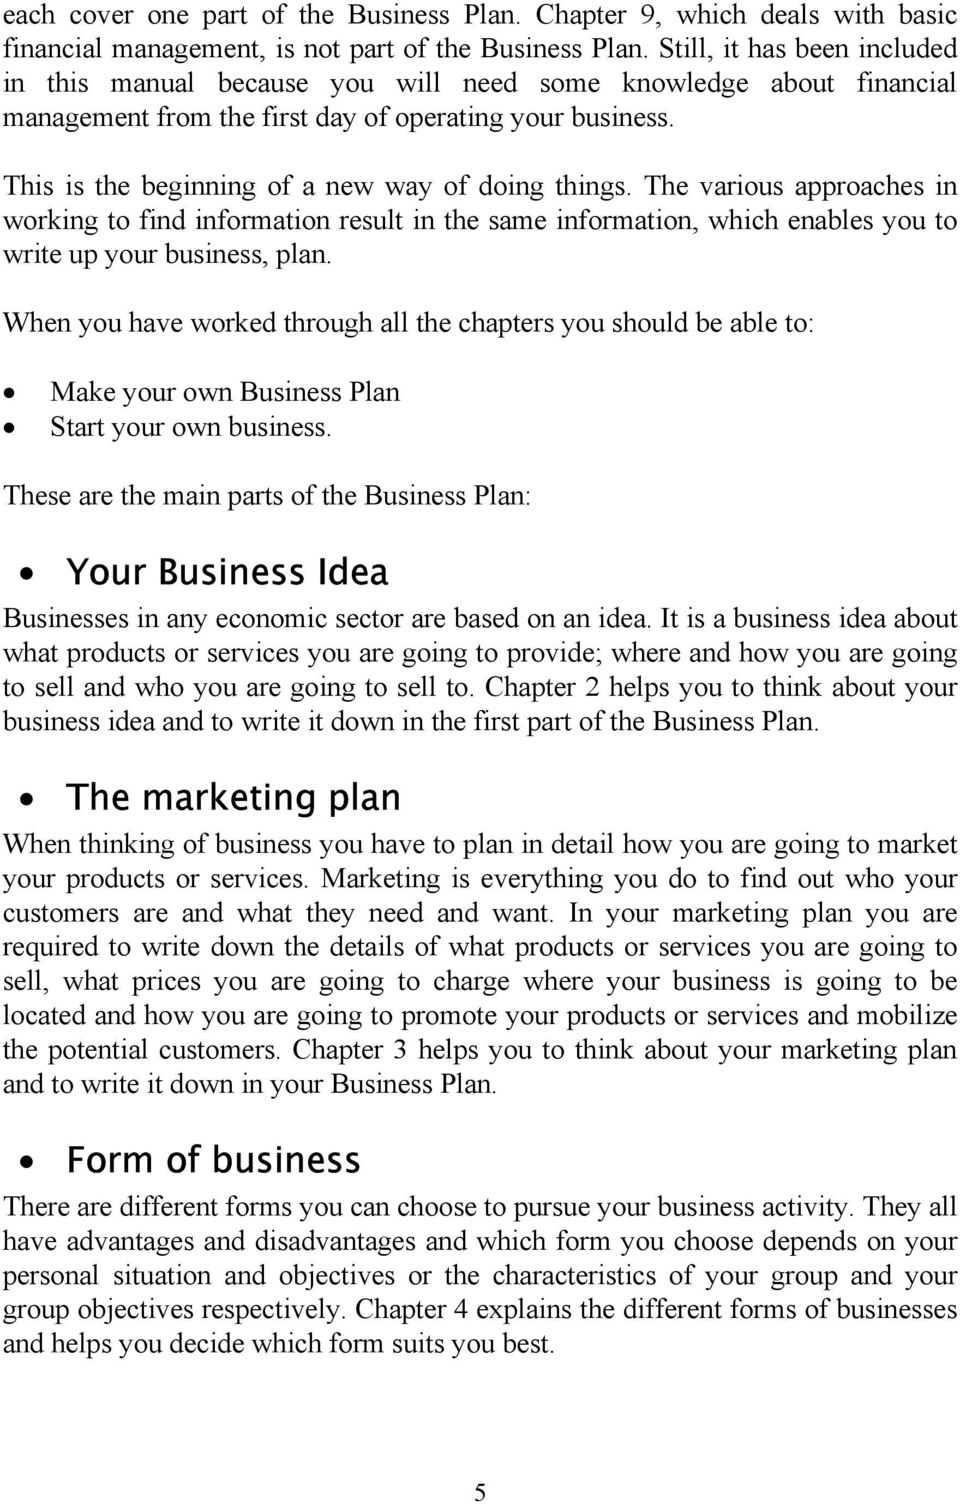 This is the beginning of a new way of doing things. The various approaches in working to find information result in the same information, which enables you to write up your business, plan.